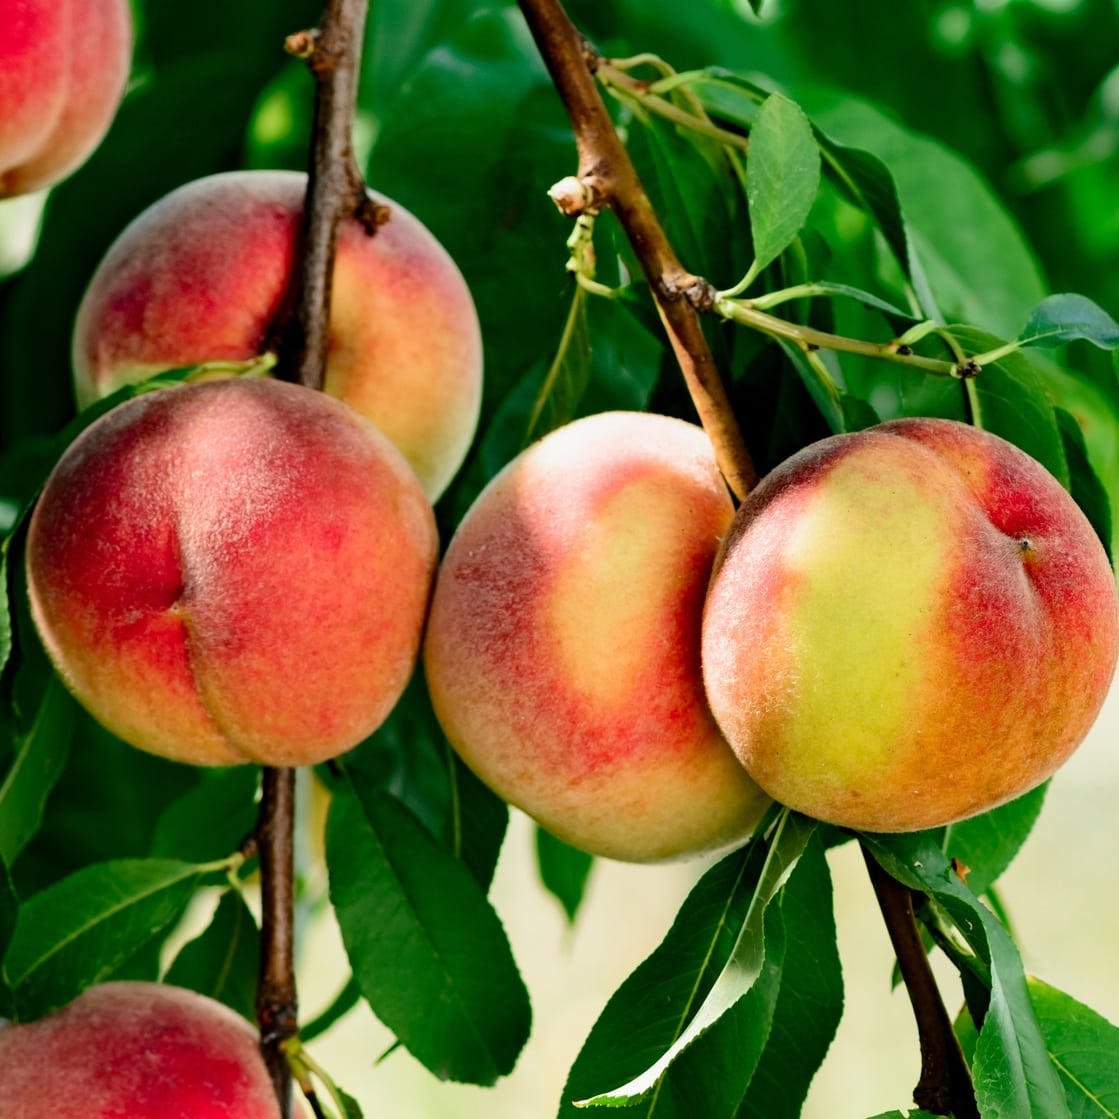 Ripe peaches on tree